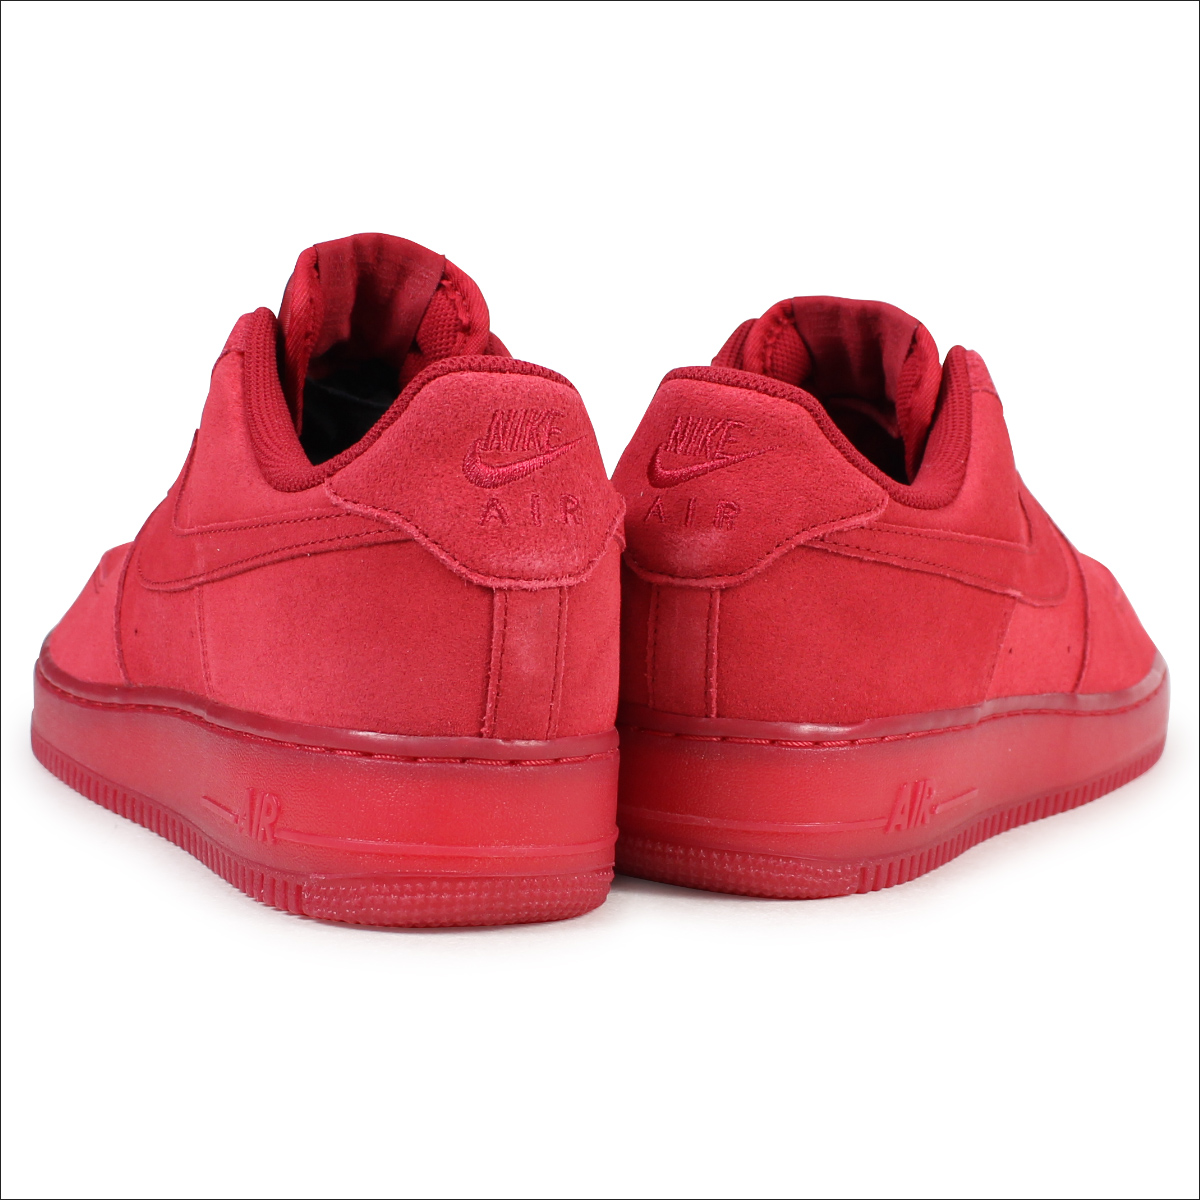 NIKE AIR FORCE 1 07 LV8 RED SUEDE Nike air force 1 sneakers 718,152 601 men's shoes red [1711]